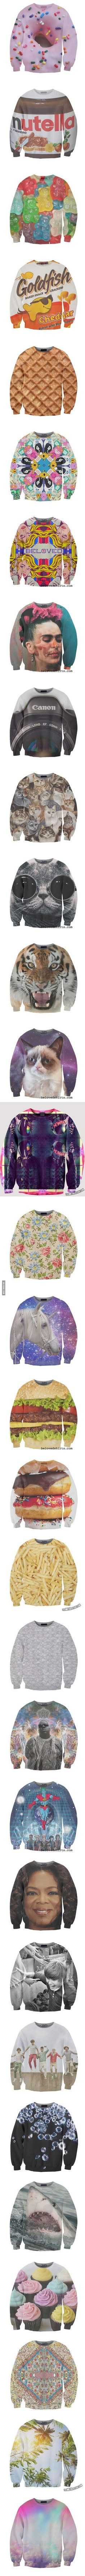 Ridiculously amazing sweatshirts that you can actually buy! I want the Oprah one lol